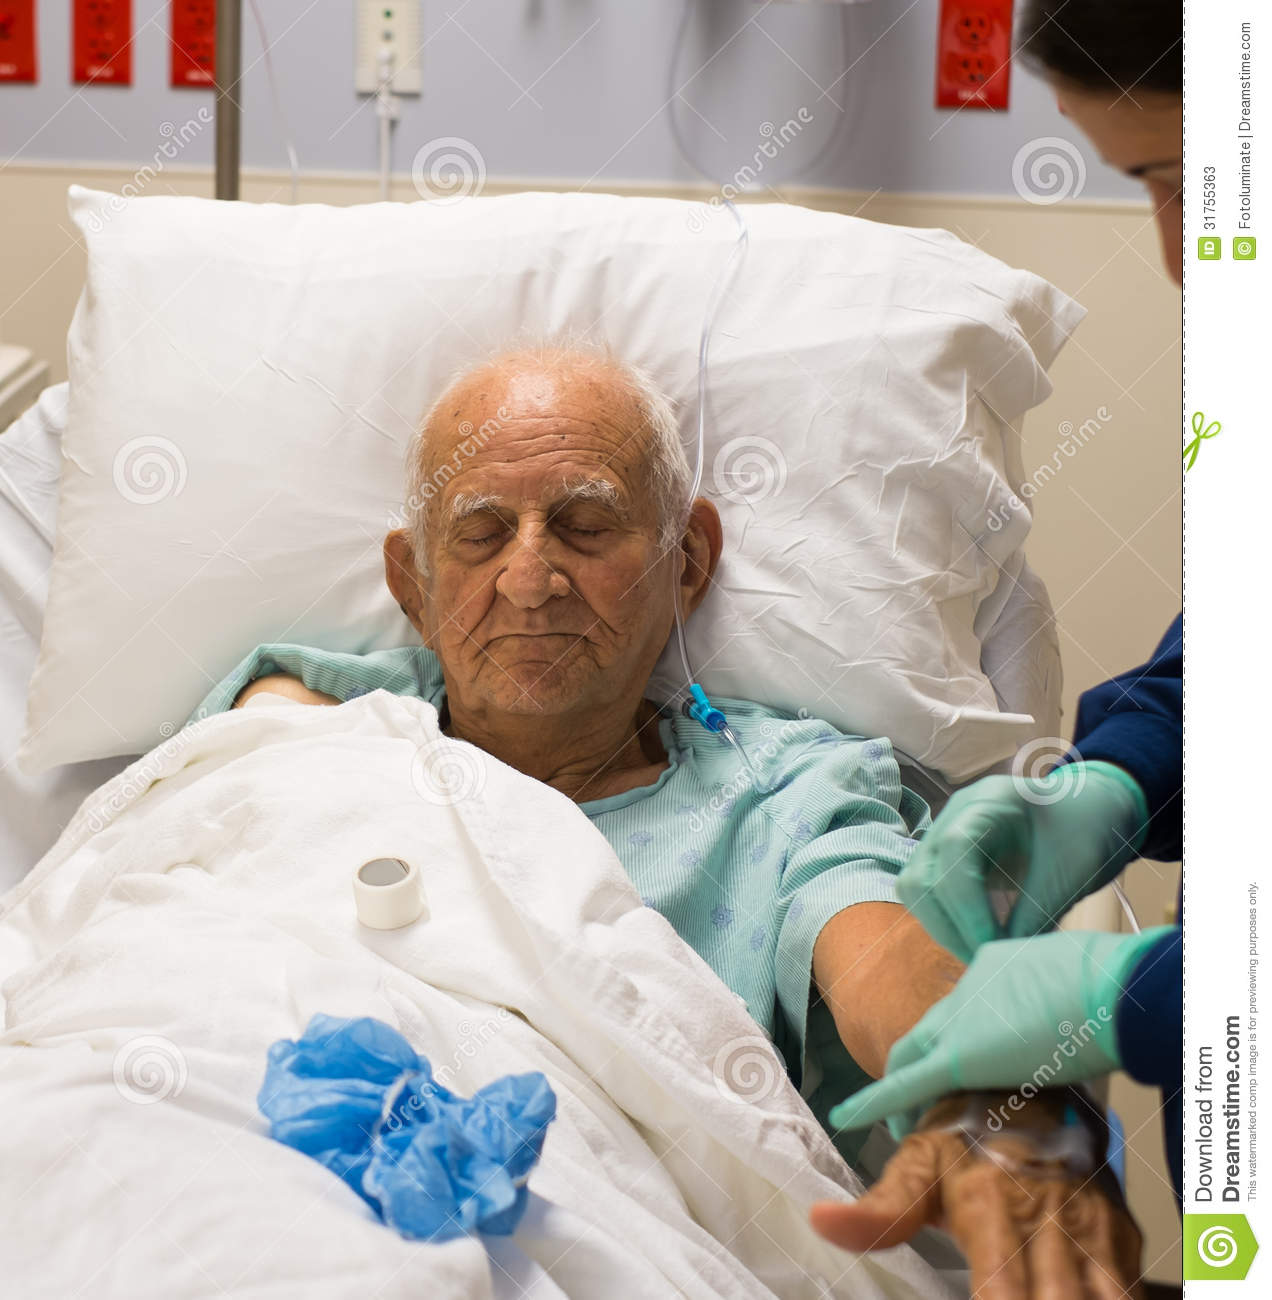 Images Of Sick Old Me In Hospital Bed : ... 80 plus year old man recovering from surgery in a hospital bed